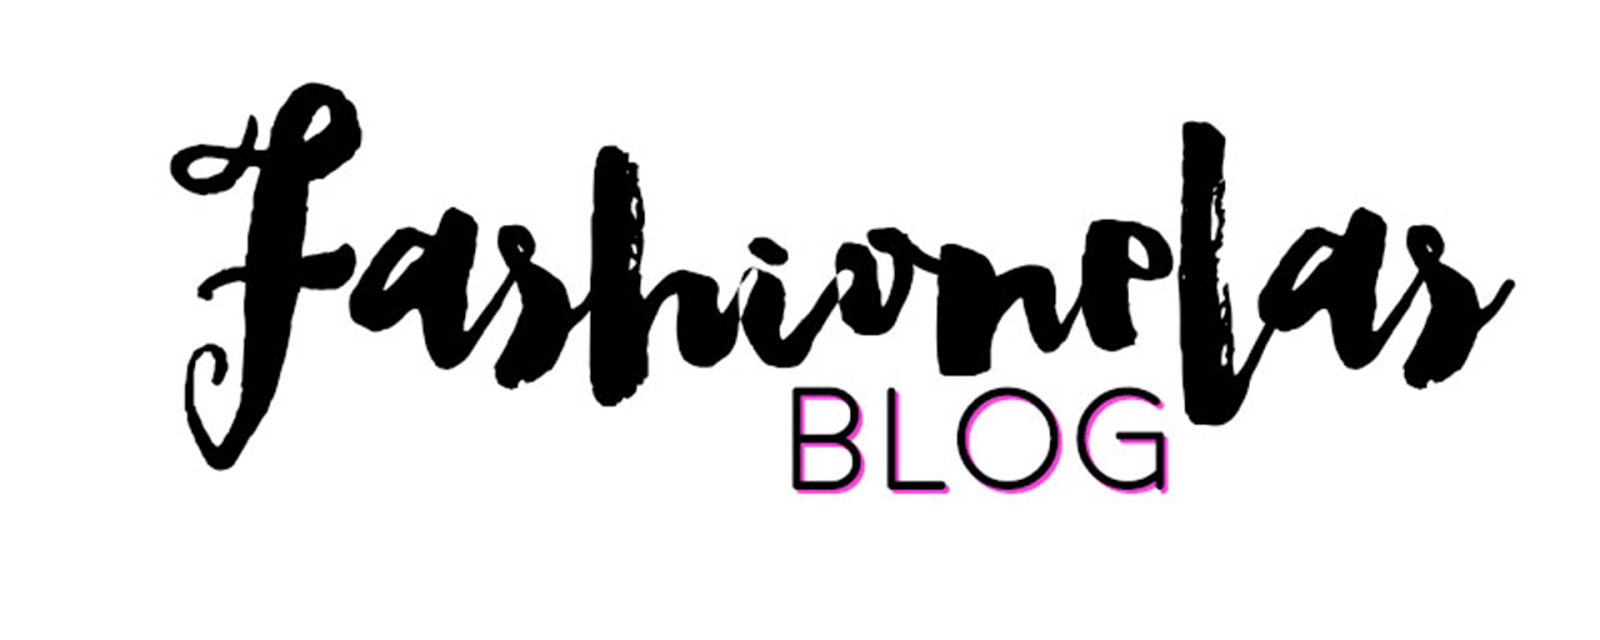 As logos do blog desde 2014